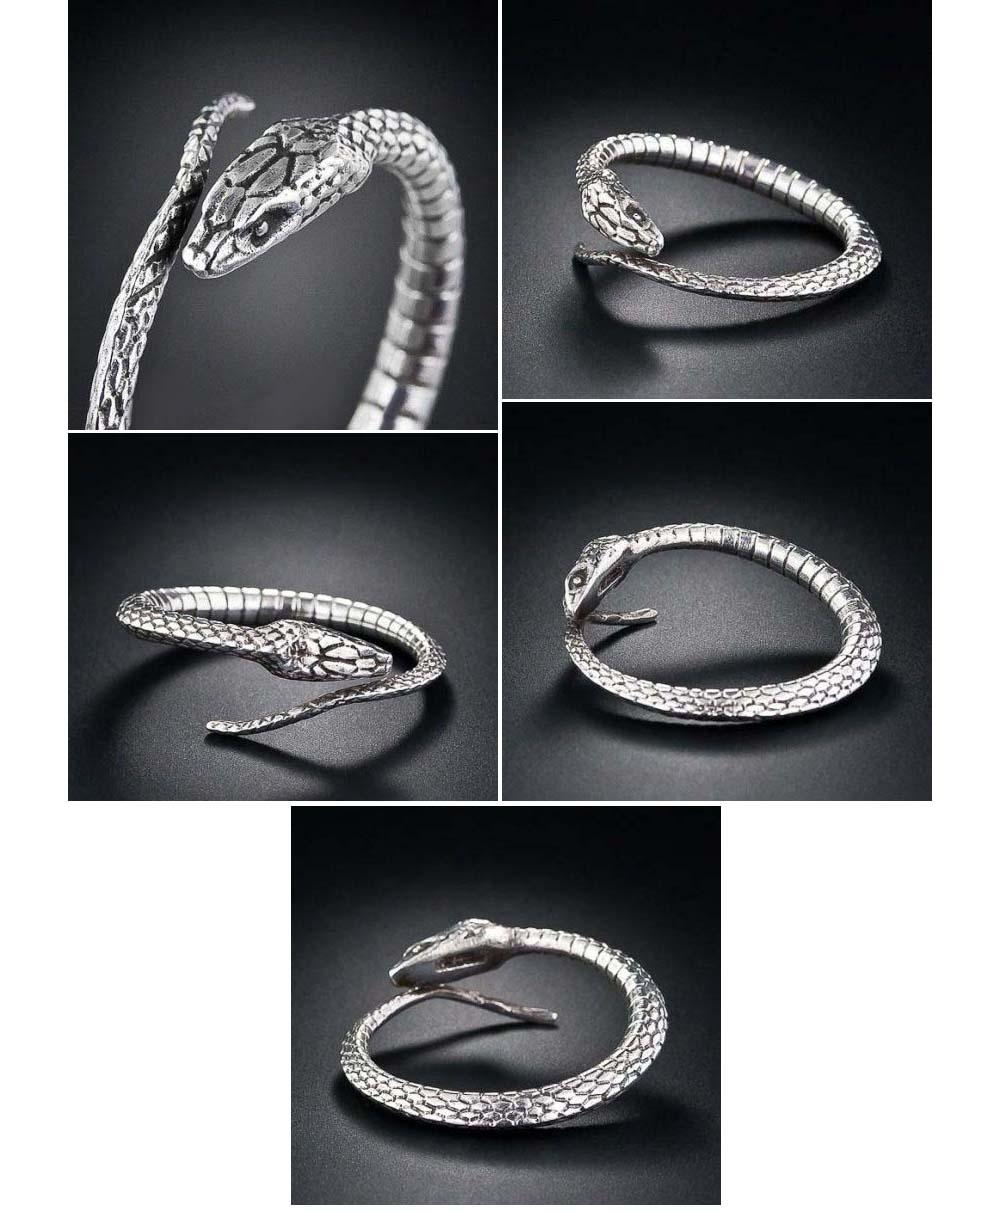 TIFFANY STERLING SILVER SNAKE SCARF RING VIPER SERPENT